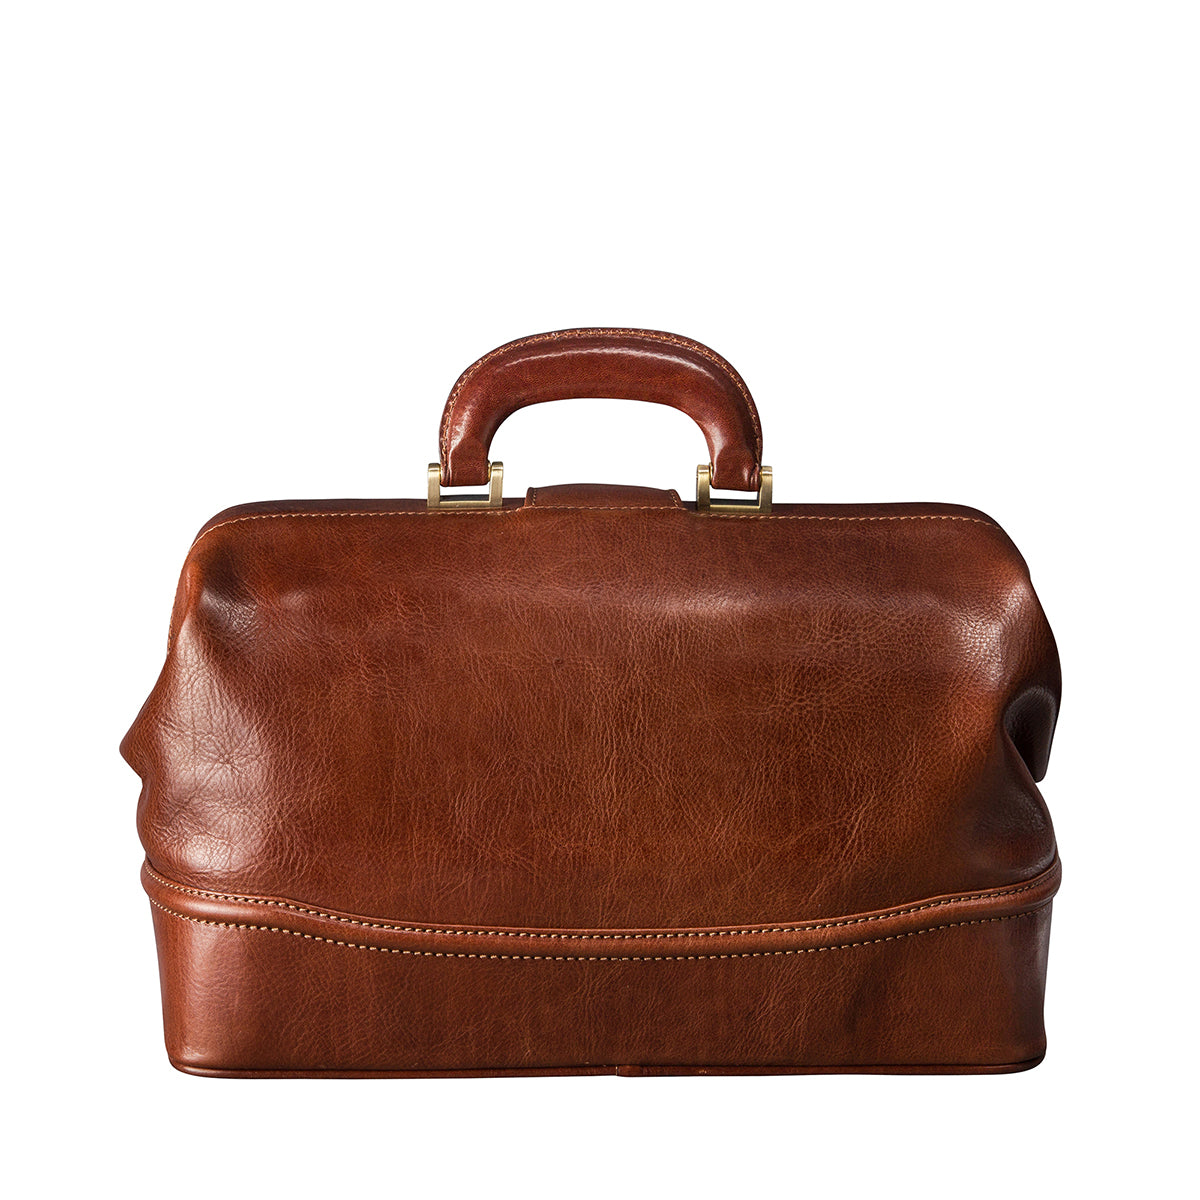 Image 4 of the 'Donnini' Chestnut Veg-Tanned Leather Doctor's Bag